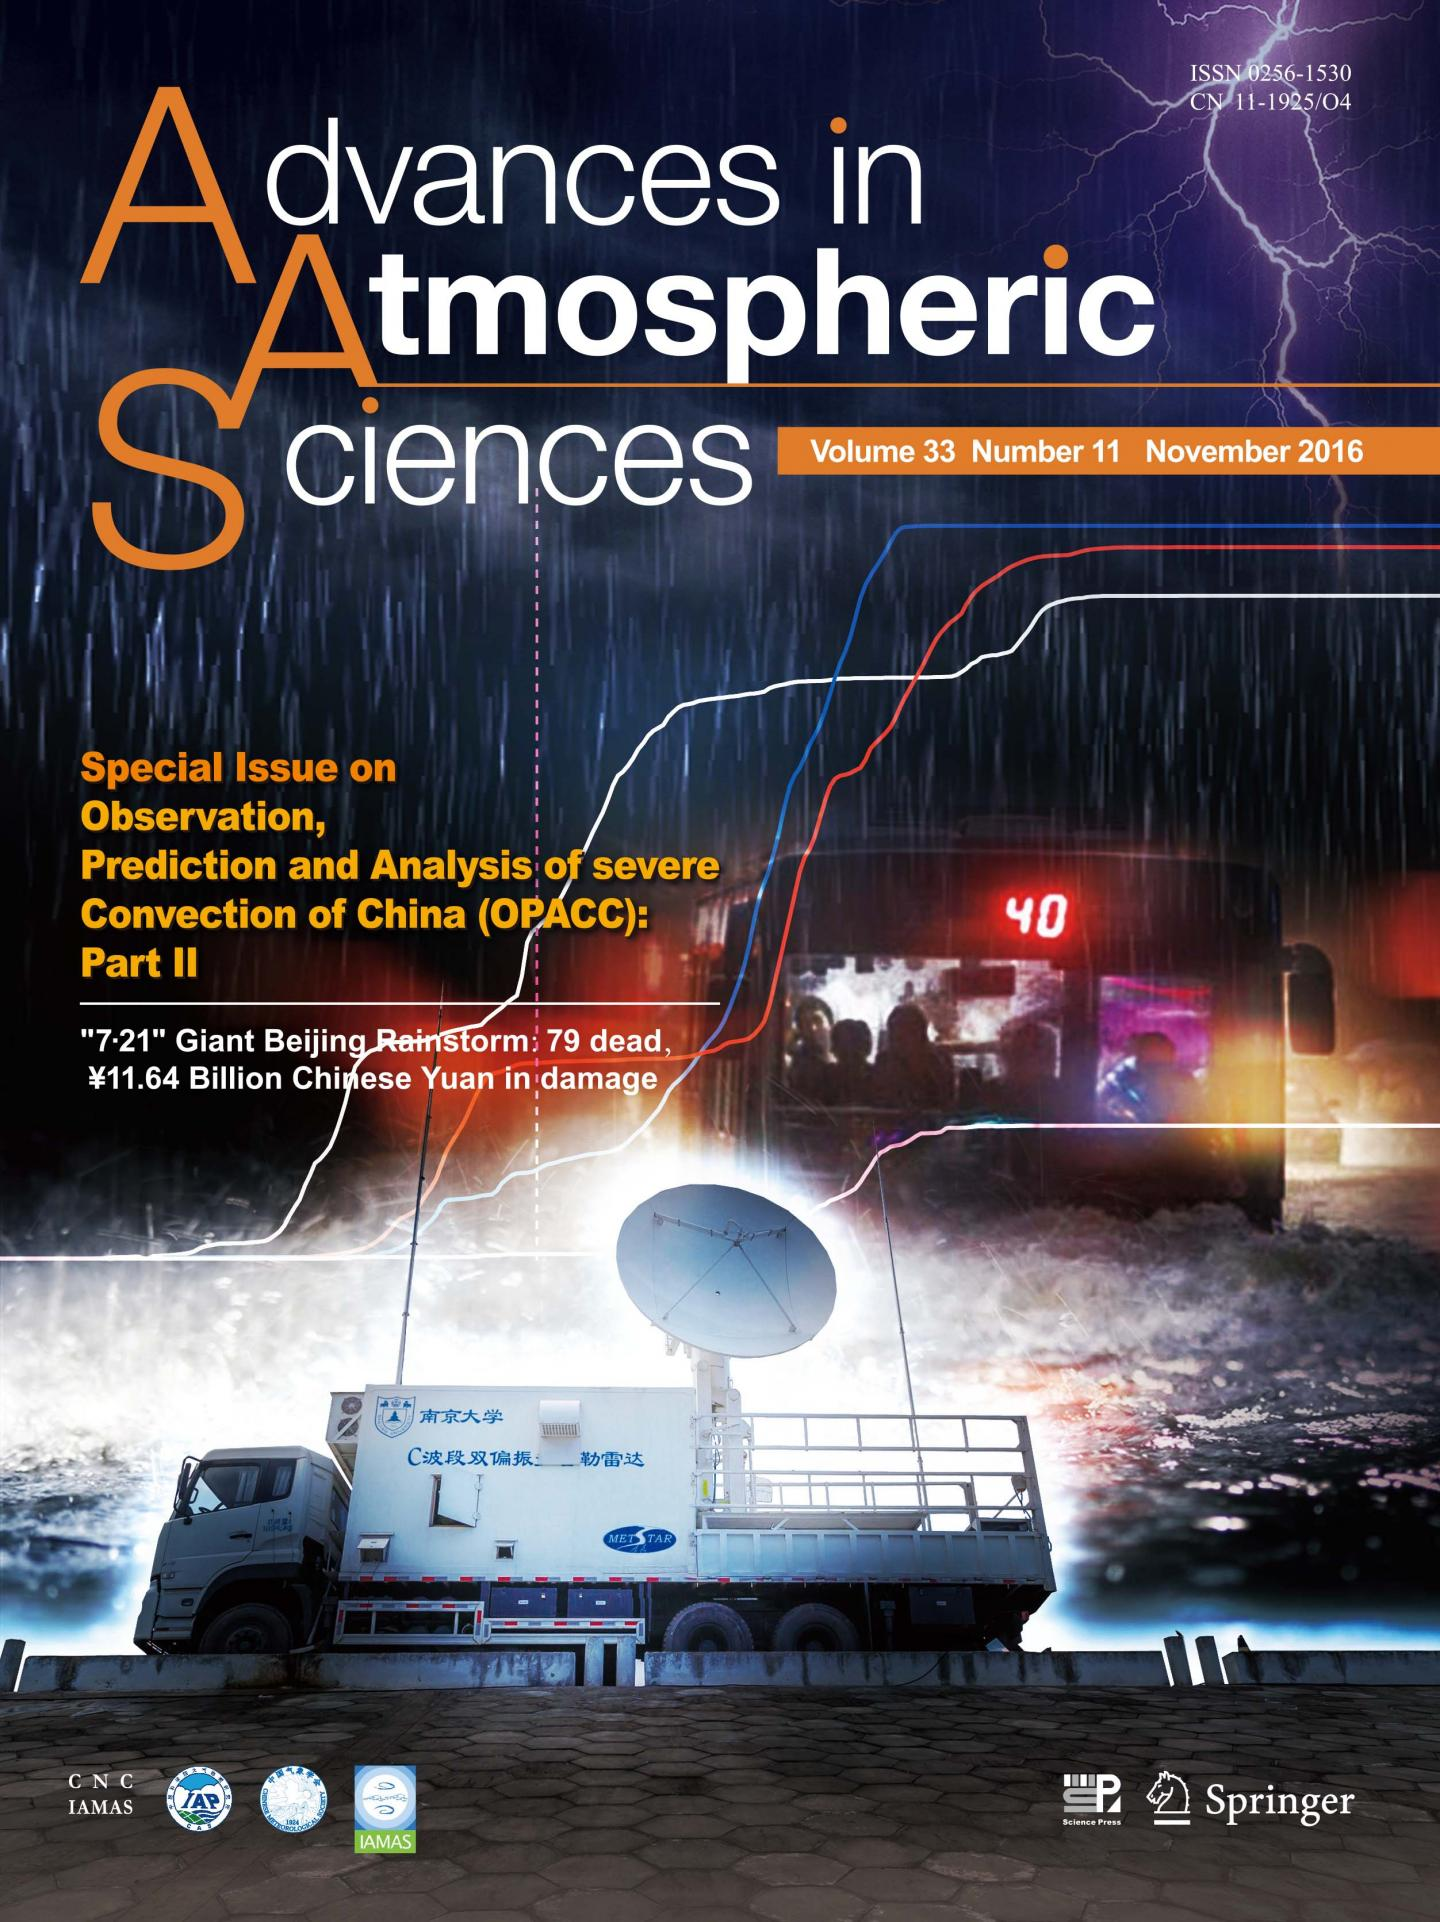 Cover Article of Issue 33(11) of <i>Advances in Atmospheric Sciences</i>